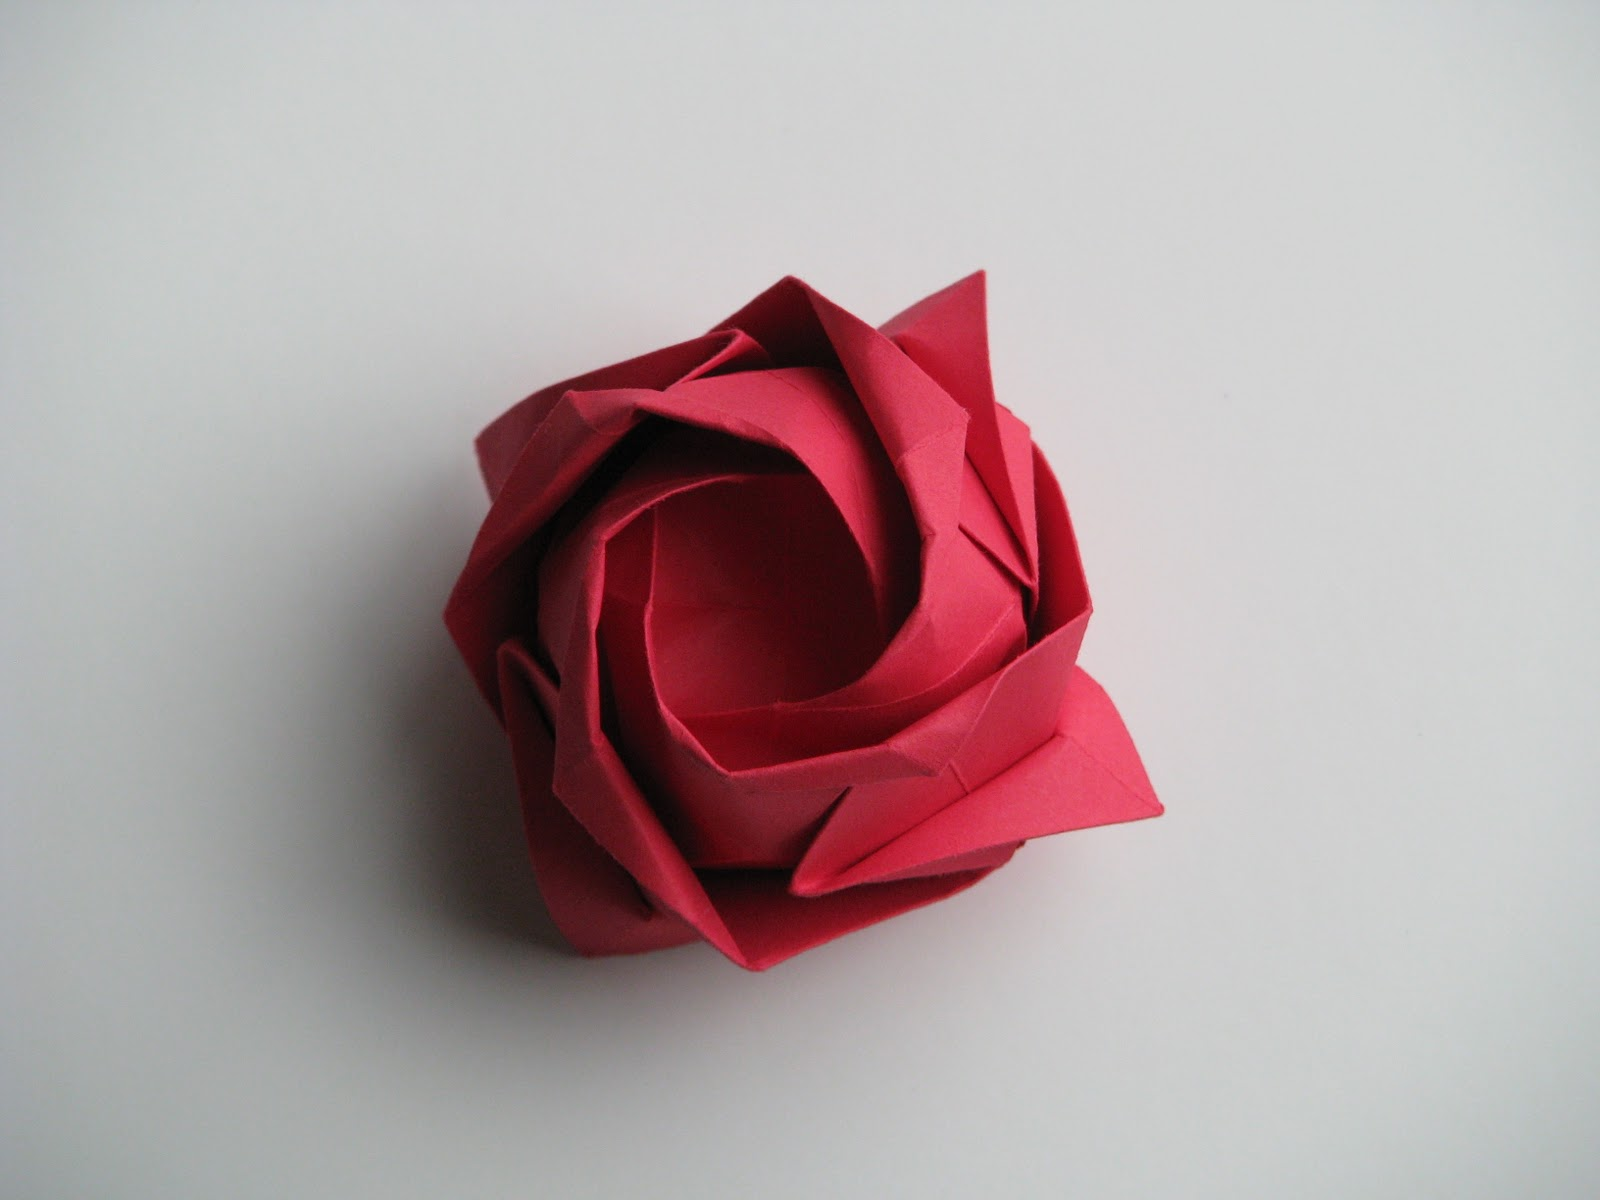 FLOWER ROSE ORIGAMI « EMBROIDERY & ORIGAMI - photo#5